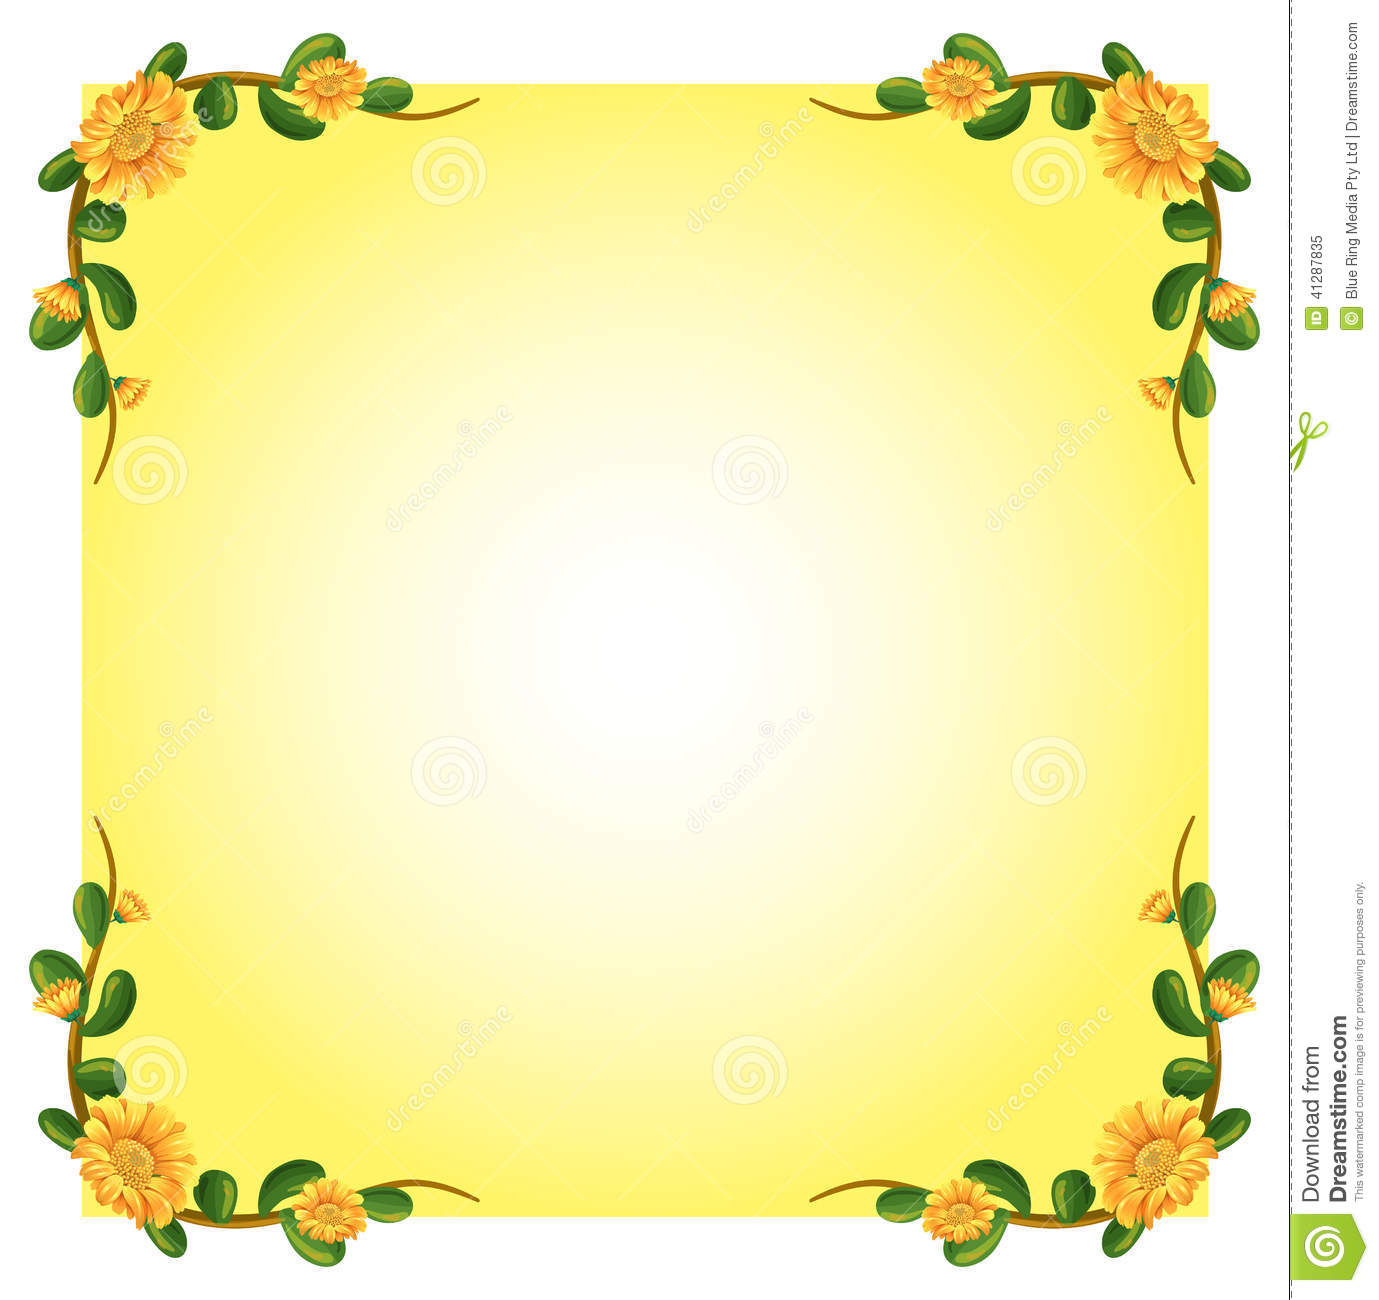 An Empty Template With A Flowering Plant Border Design Stock ...